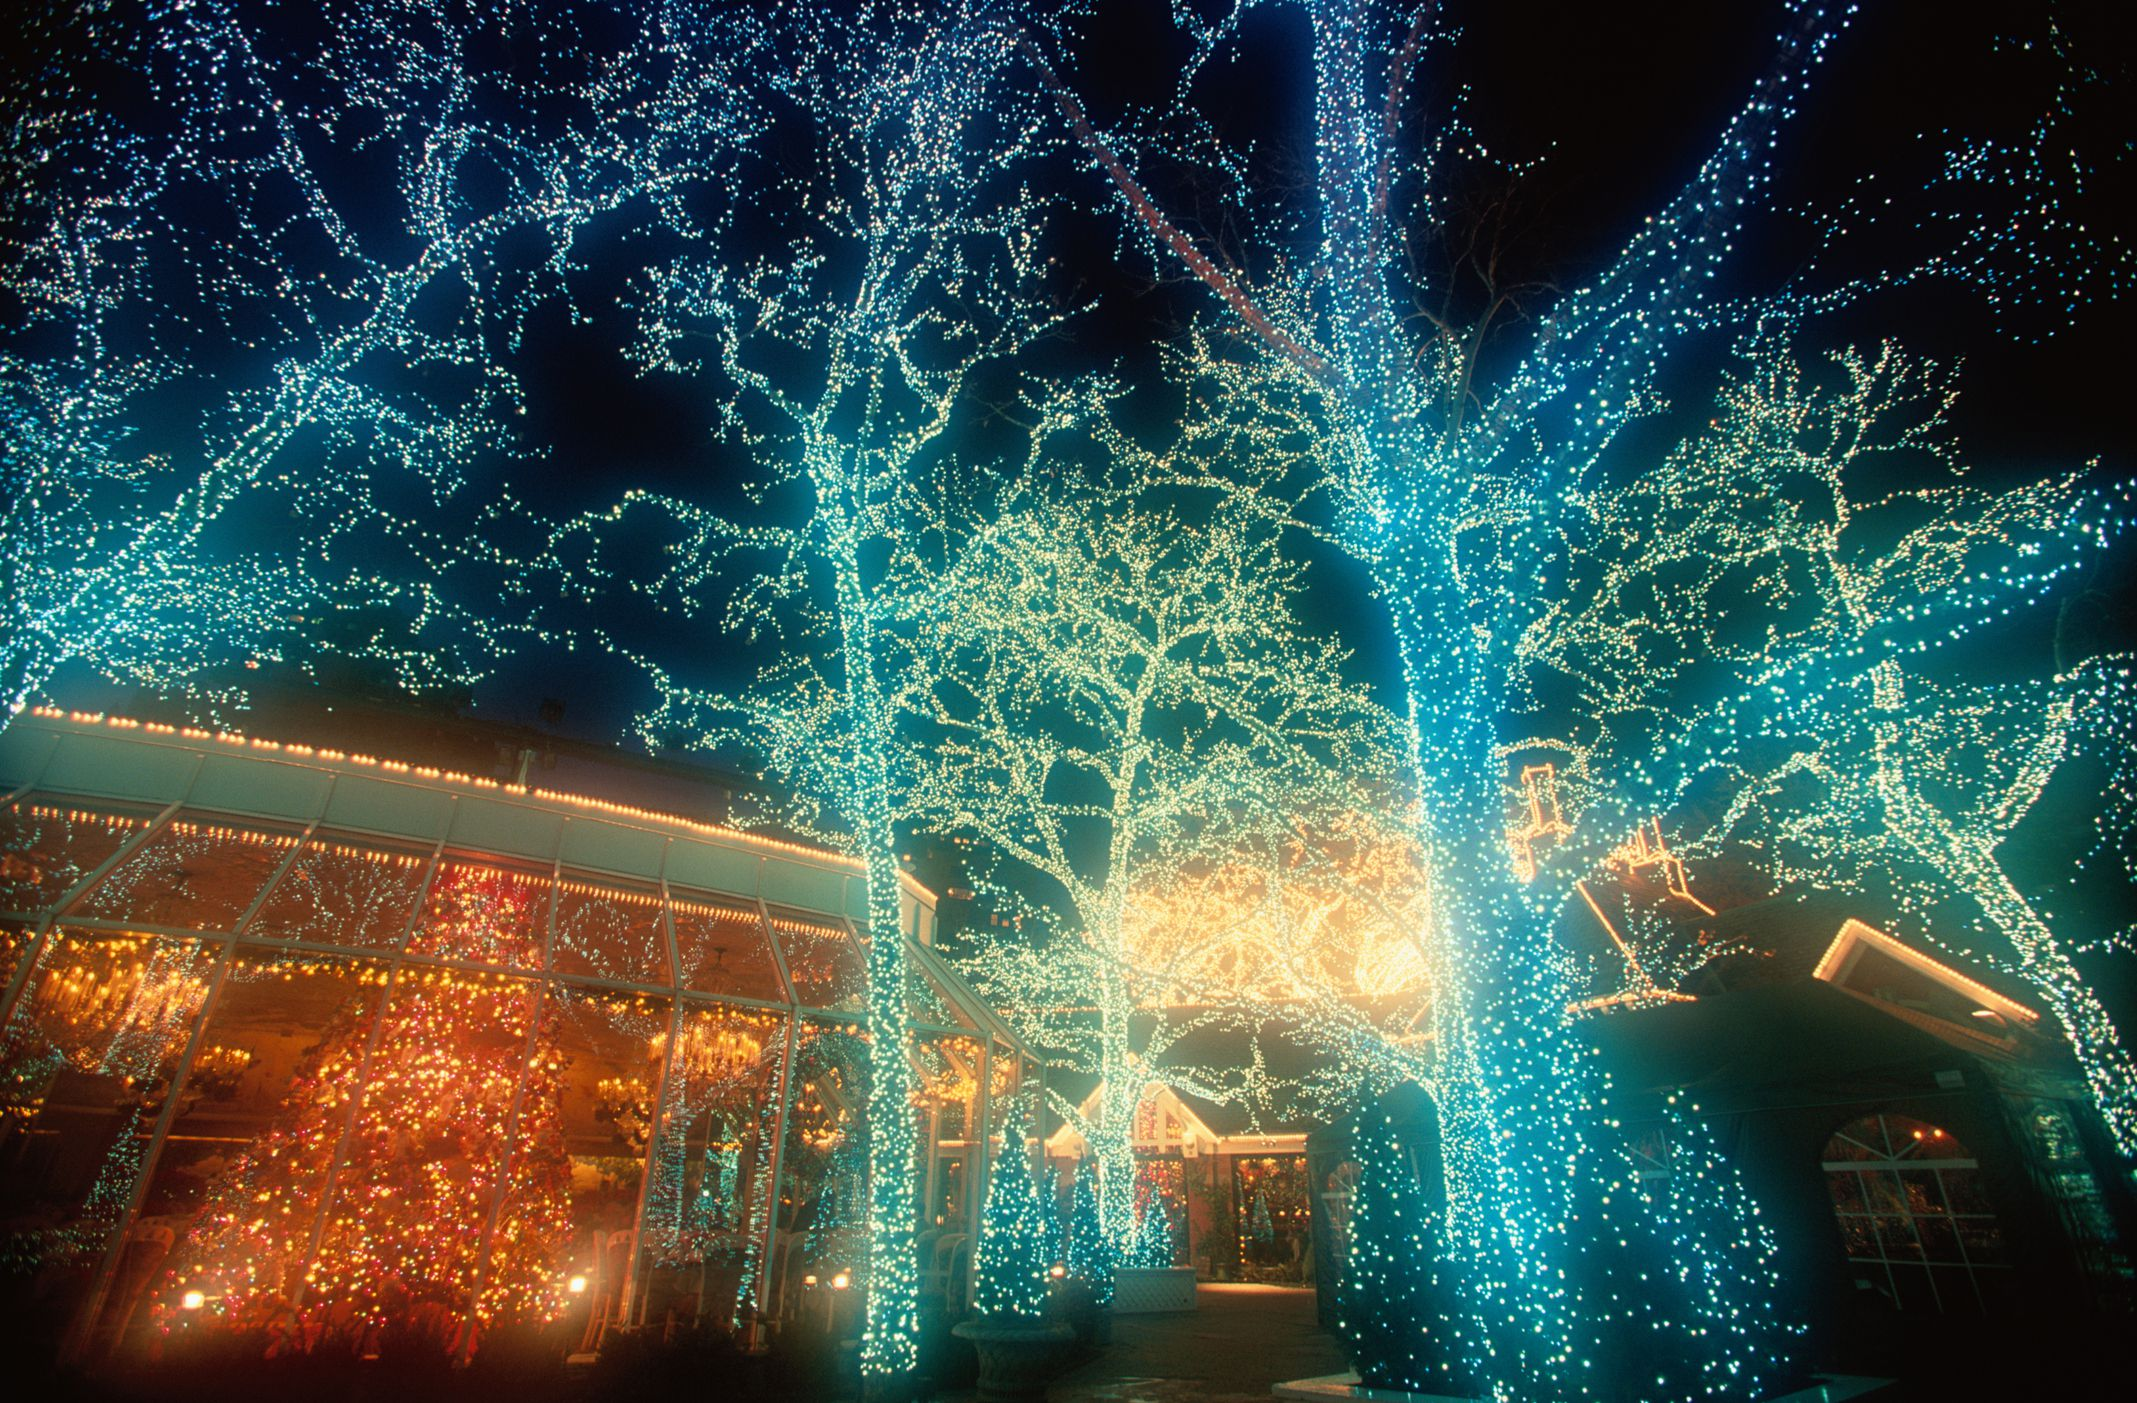 Trees lighted up with blue Christmas lights and a lit star in orange.